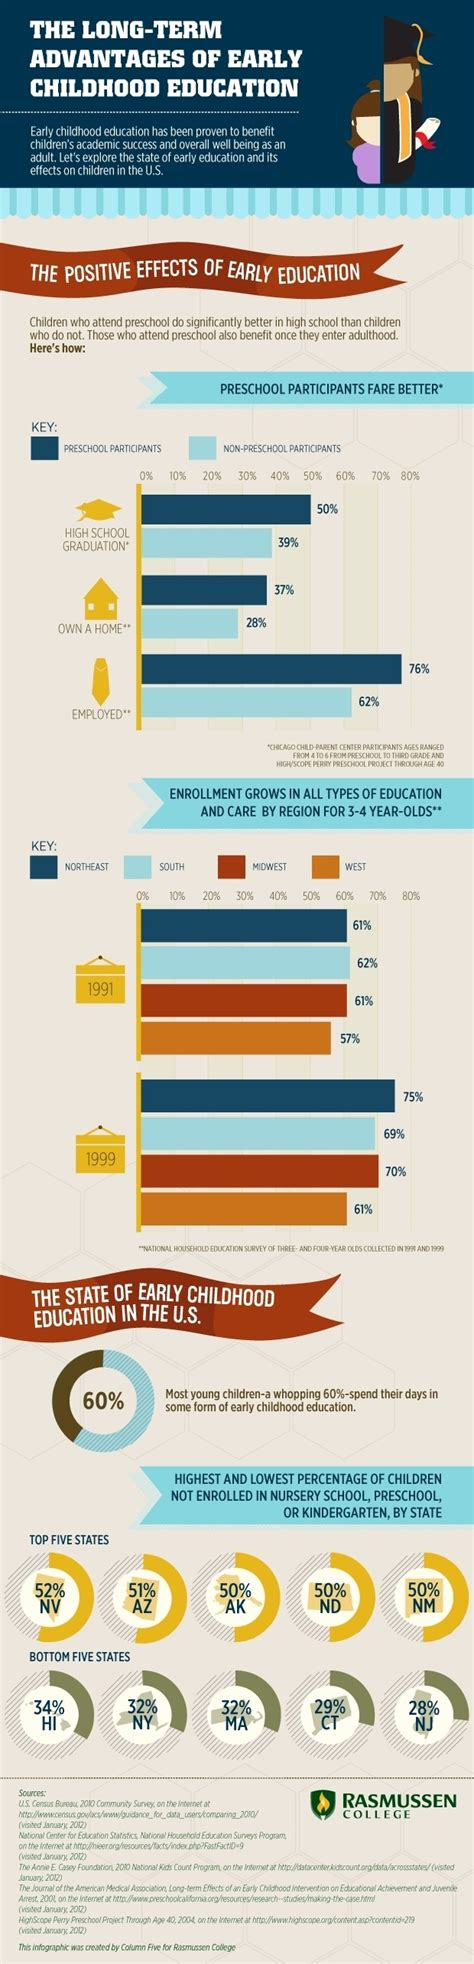 advantages  early childhood education infographic